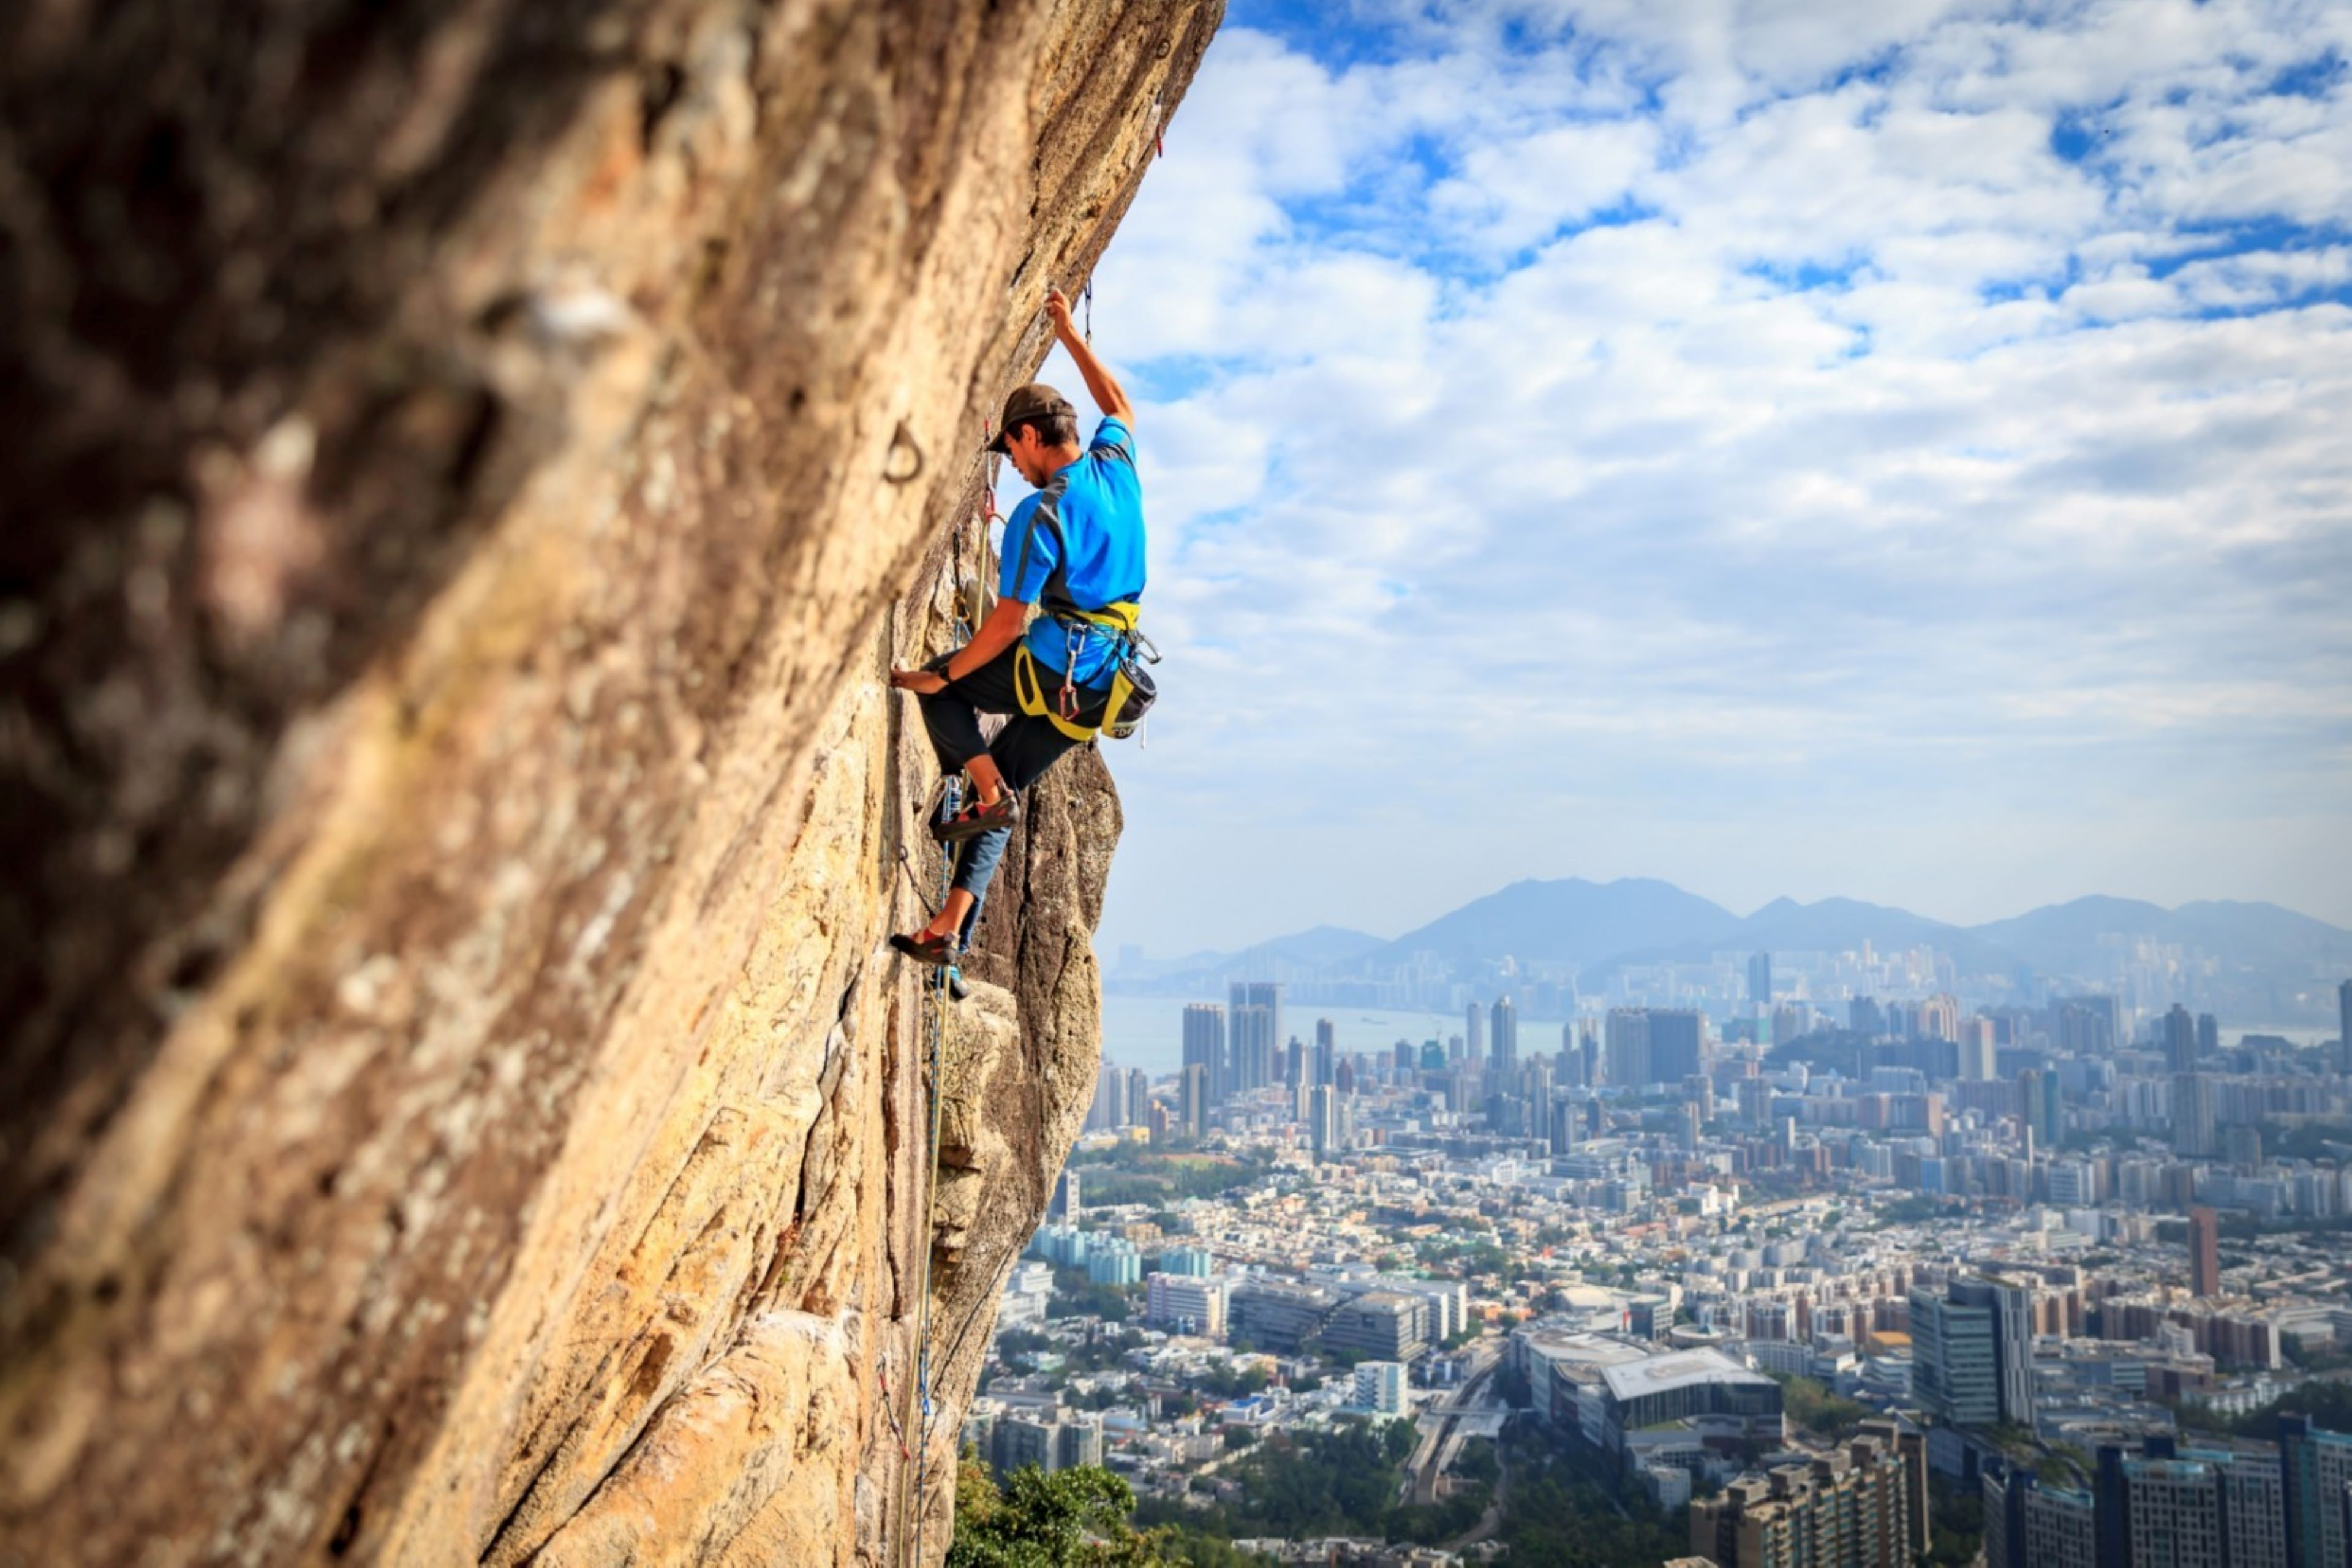 EY - Climber in a blue shirt scaling a rock face with a view of a city in the distance